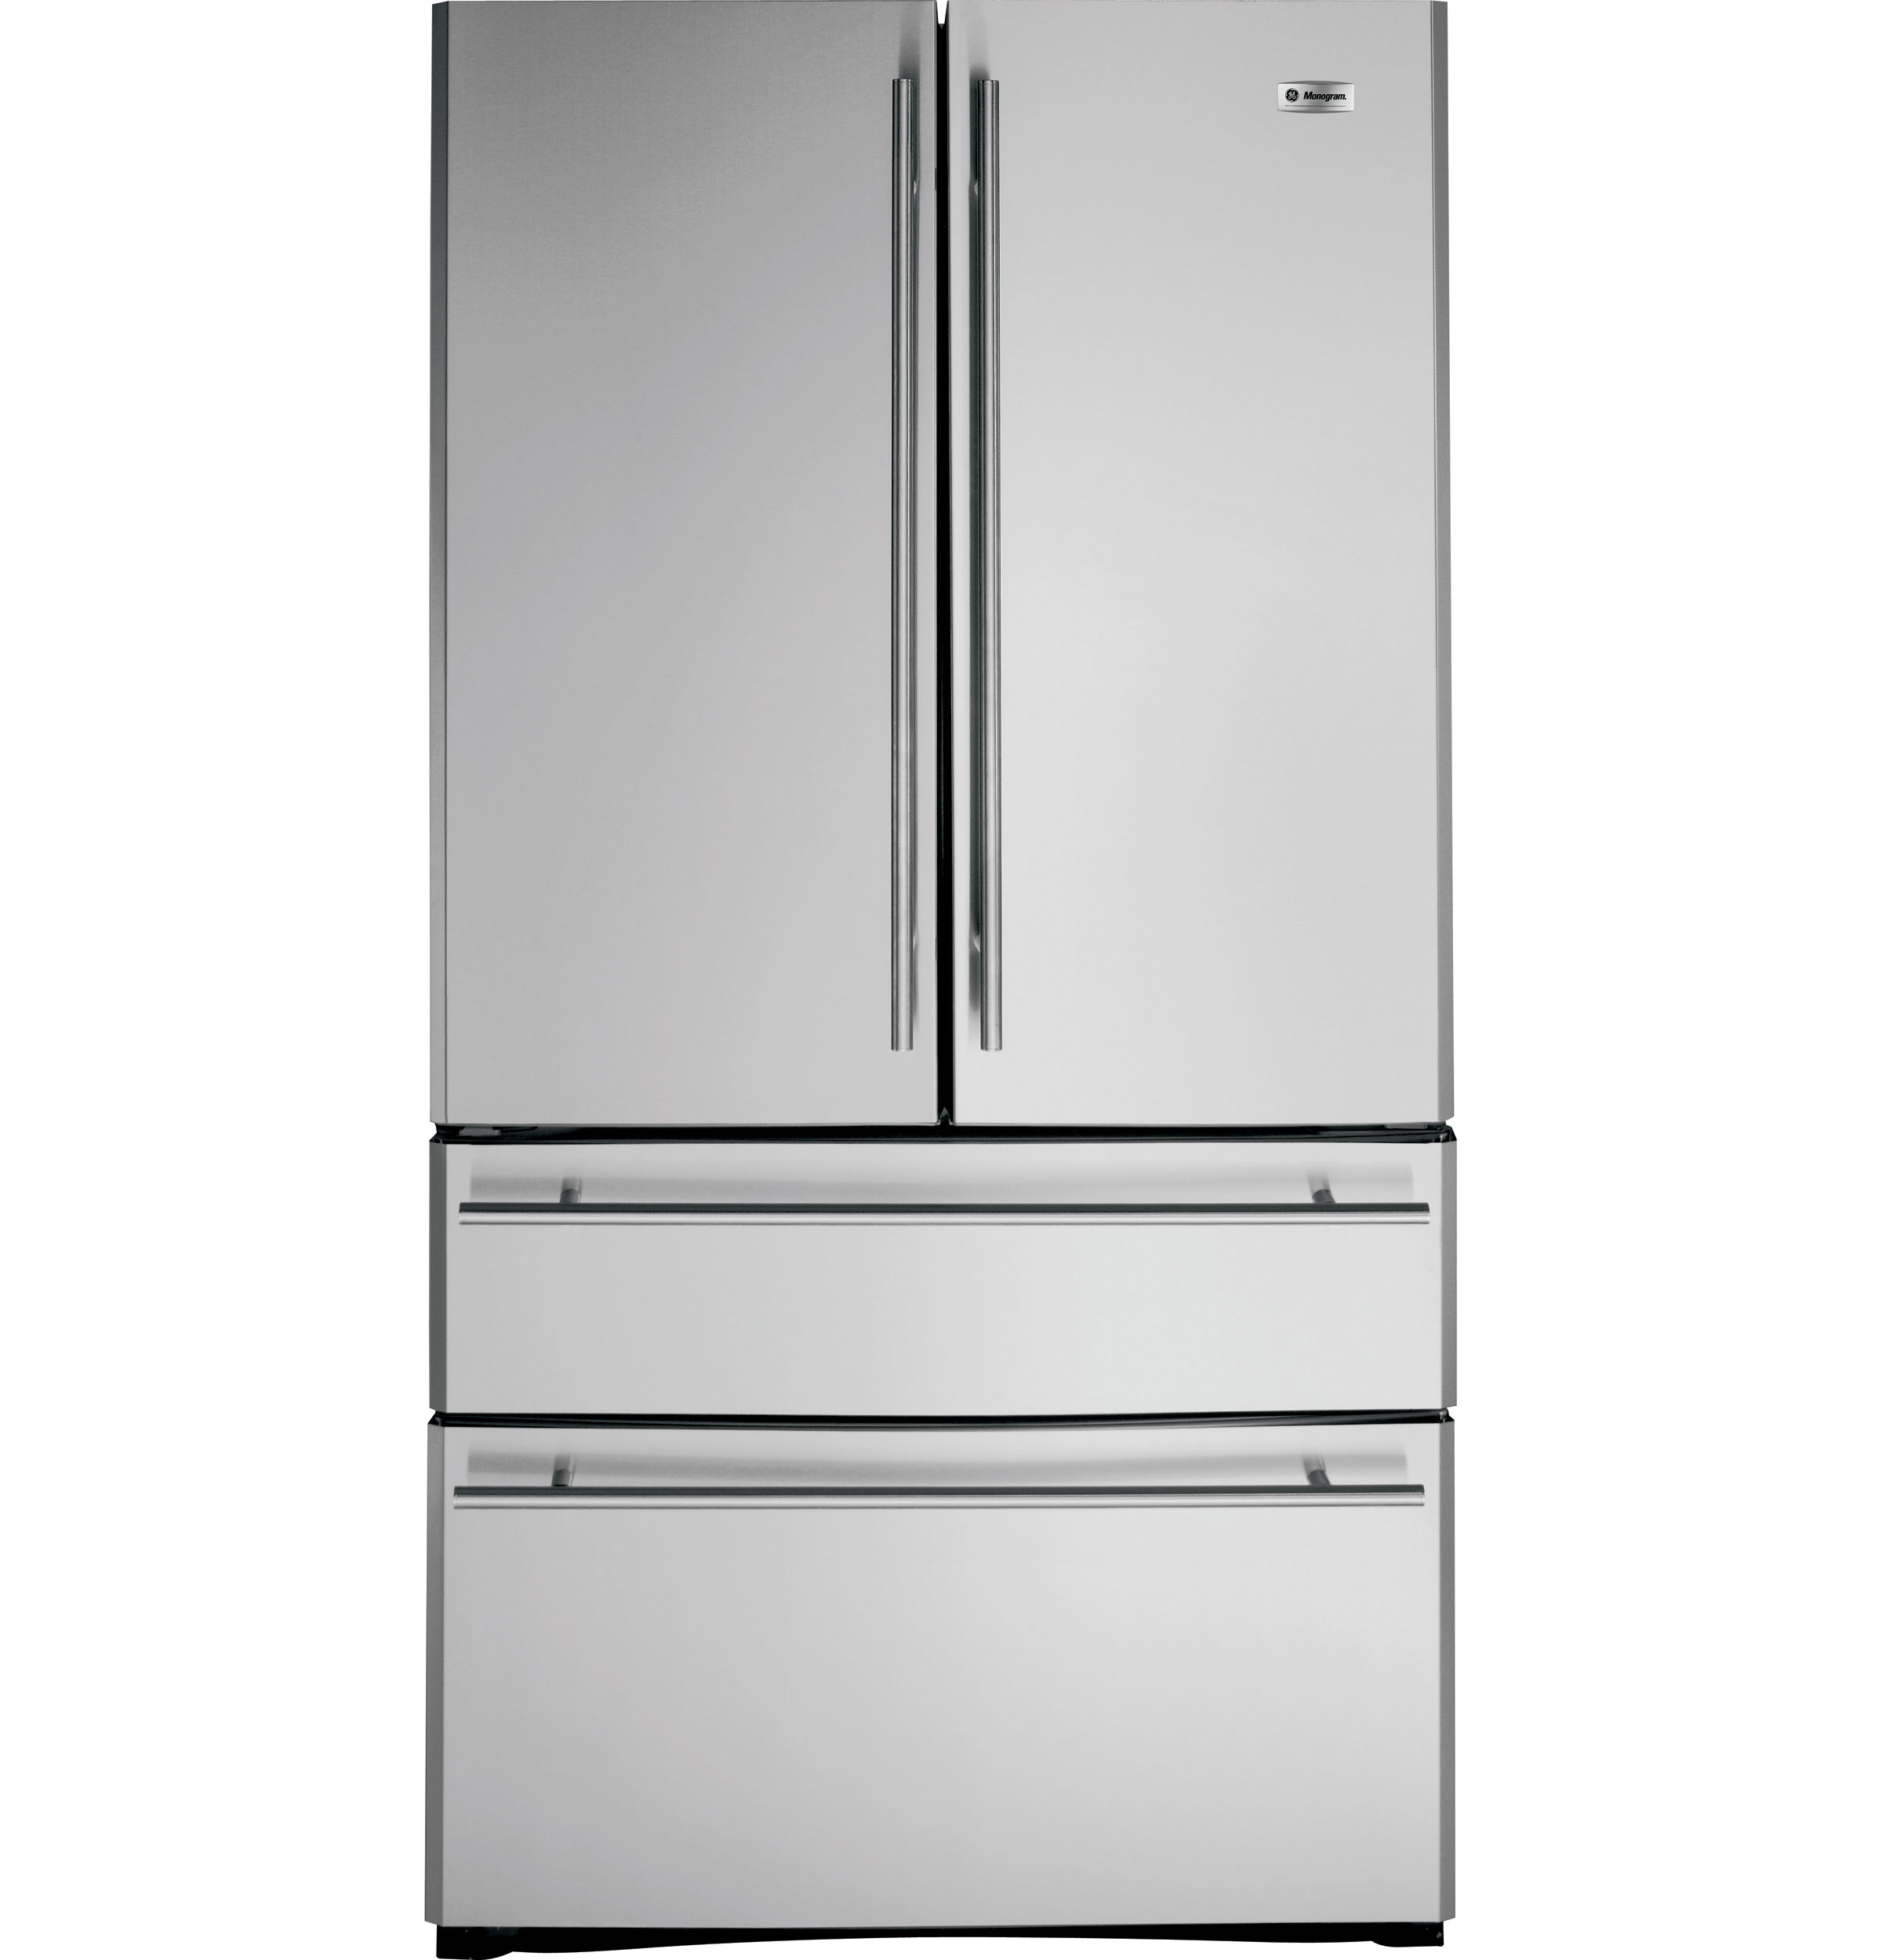 lg sub themiracle french zero glass refrigerator refrigerators biz bar ideas door